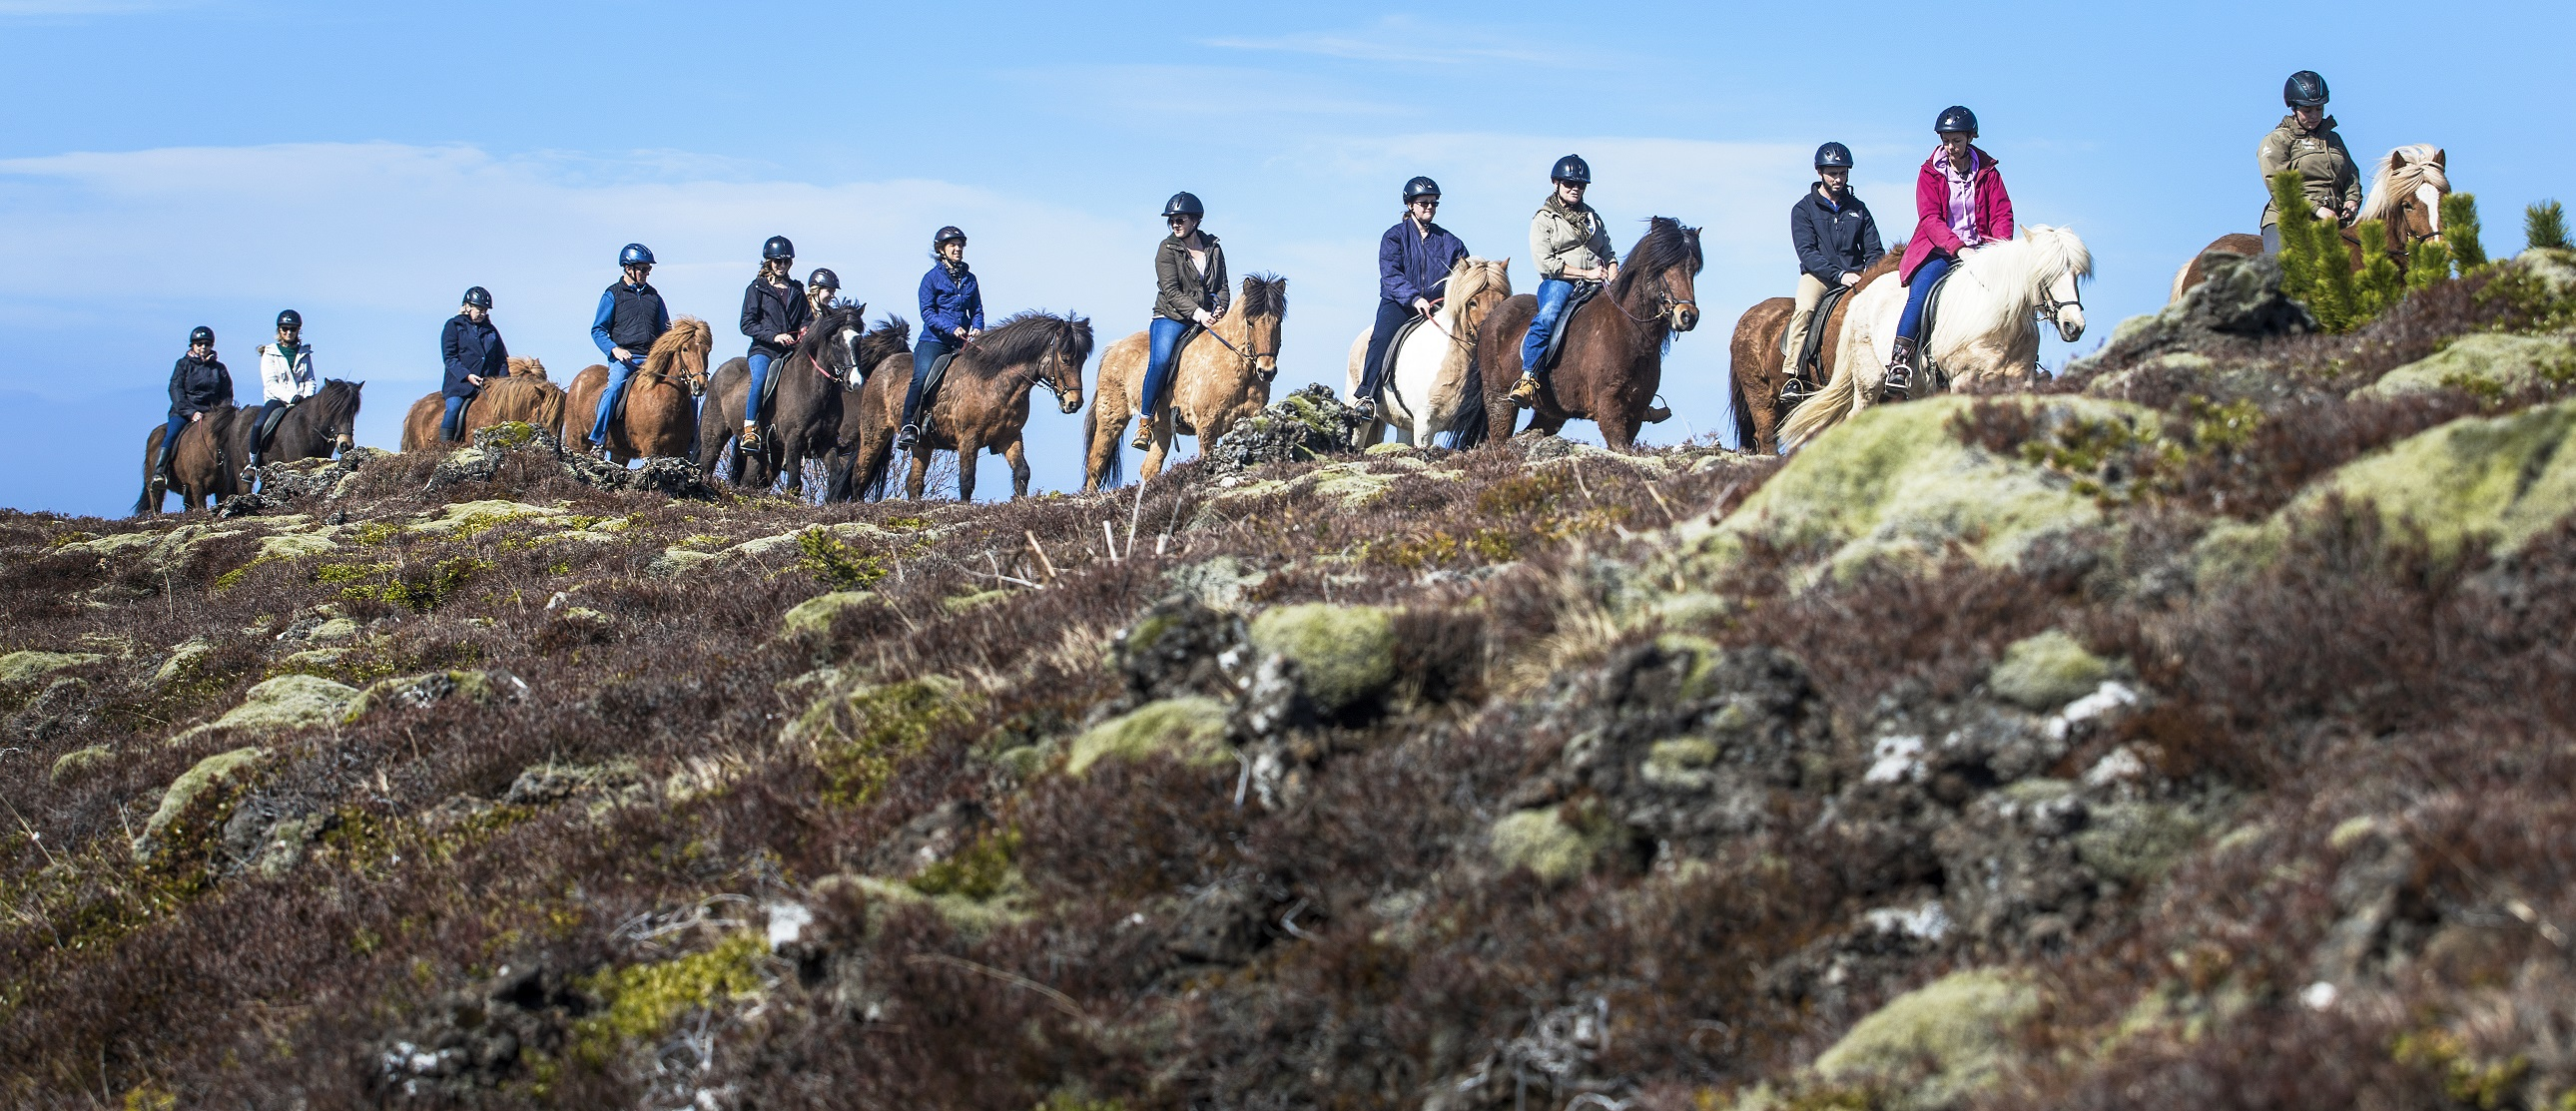 Horseback riding 101 a quick guide for beginner western riders array horseback riding in the lava fields guide to iceland rh guidetoiceland is fandeluxe Image collections